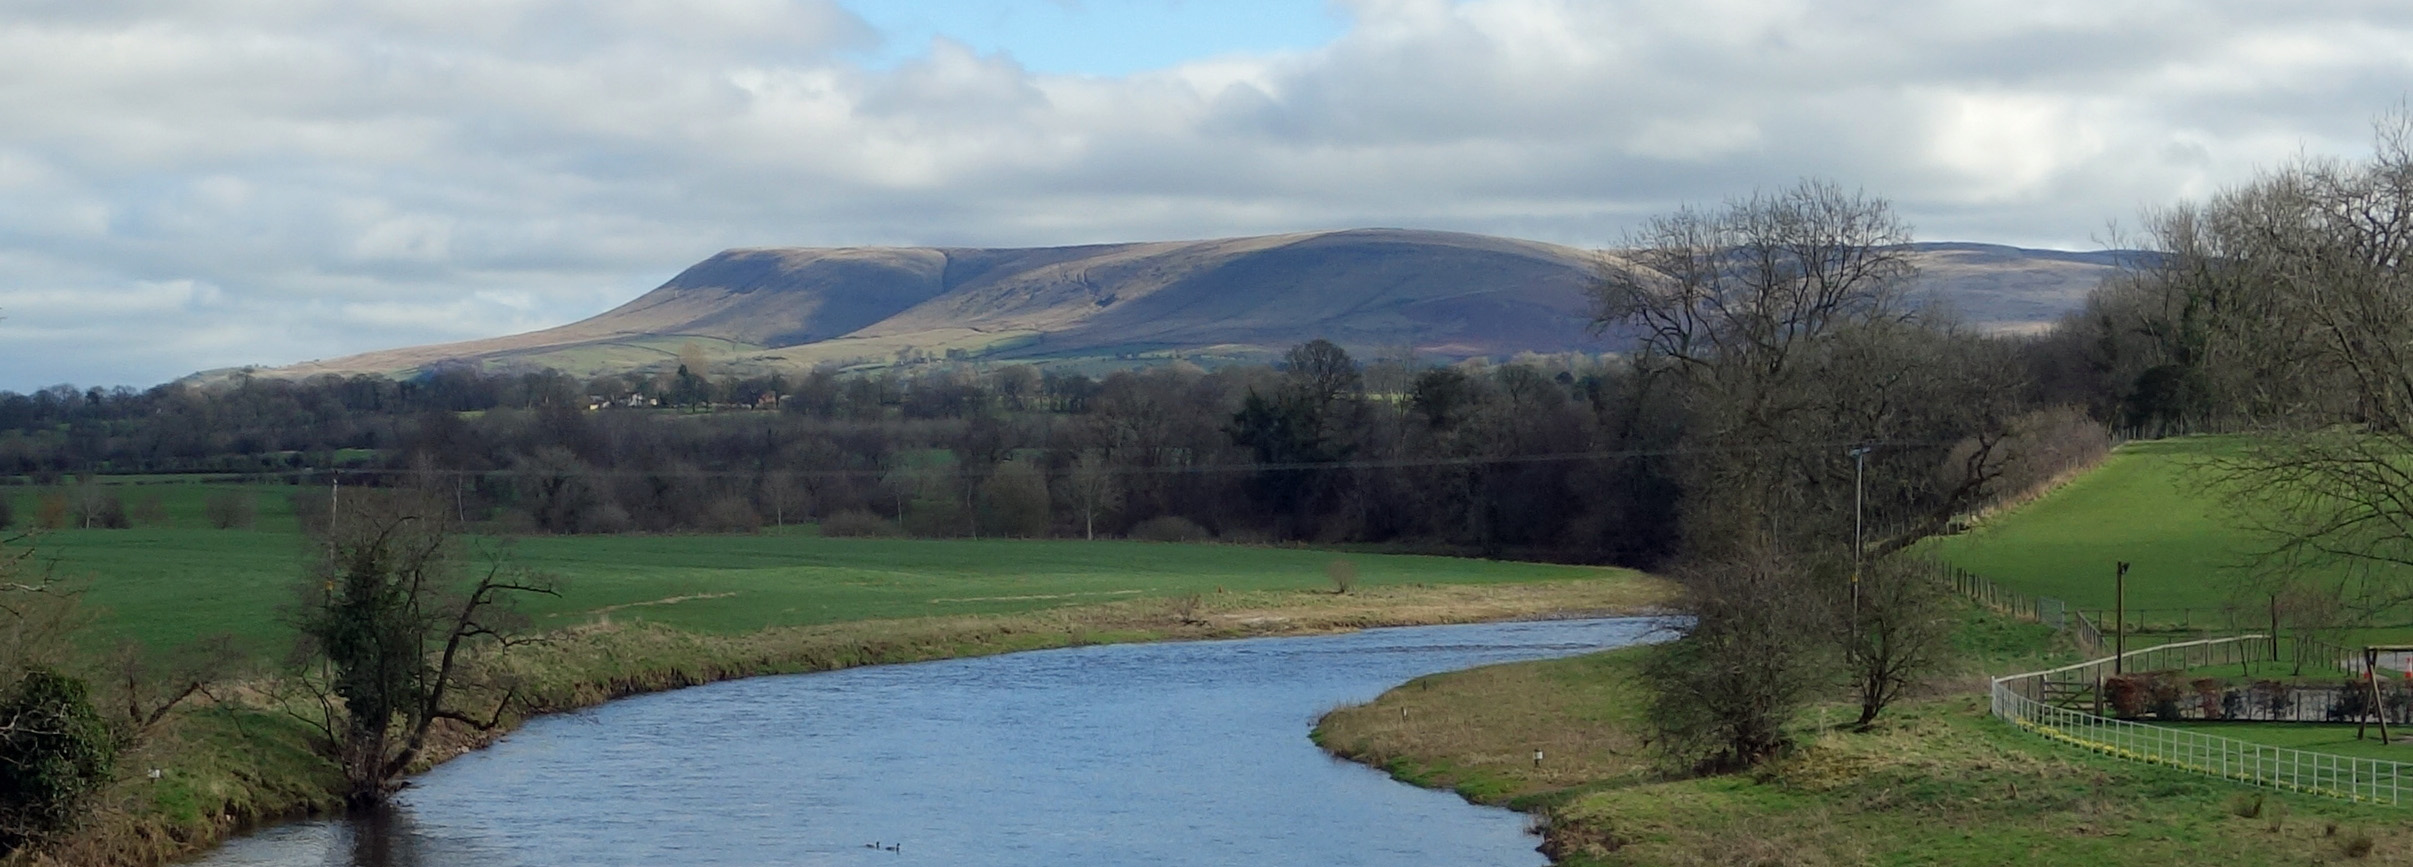 Pendle from Mitton Bridge